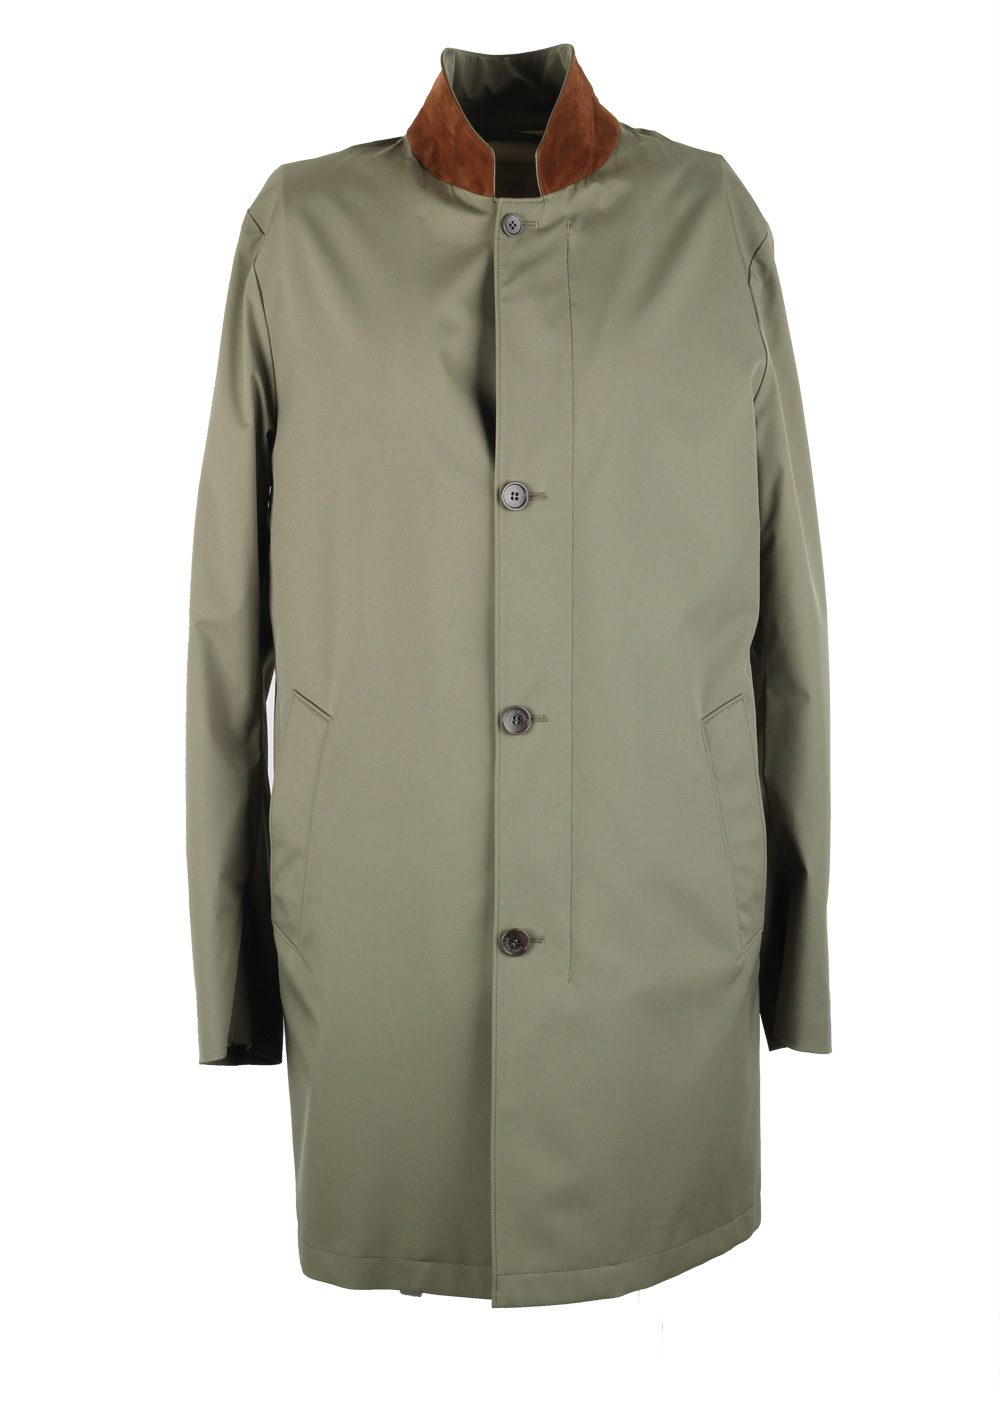 Loro Piana Green Storm System Sebring Coat Size M Medium Outerwear | Costume Limité